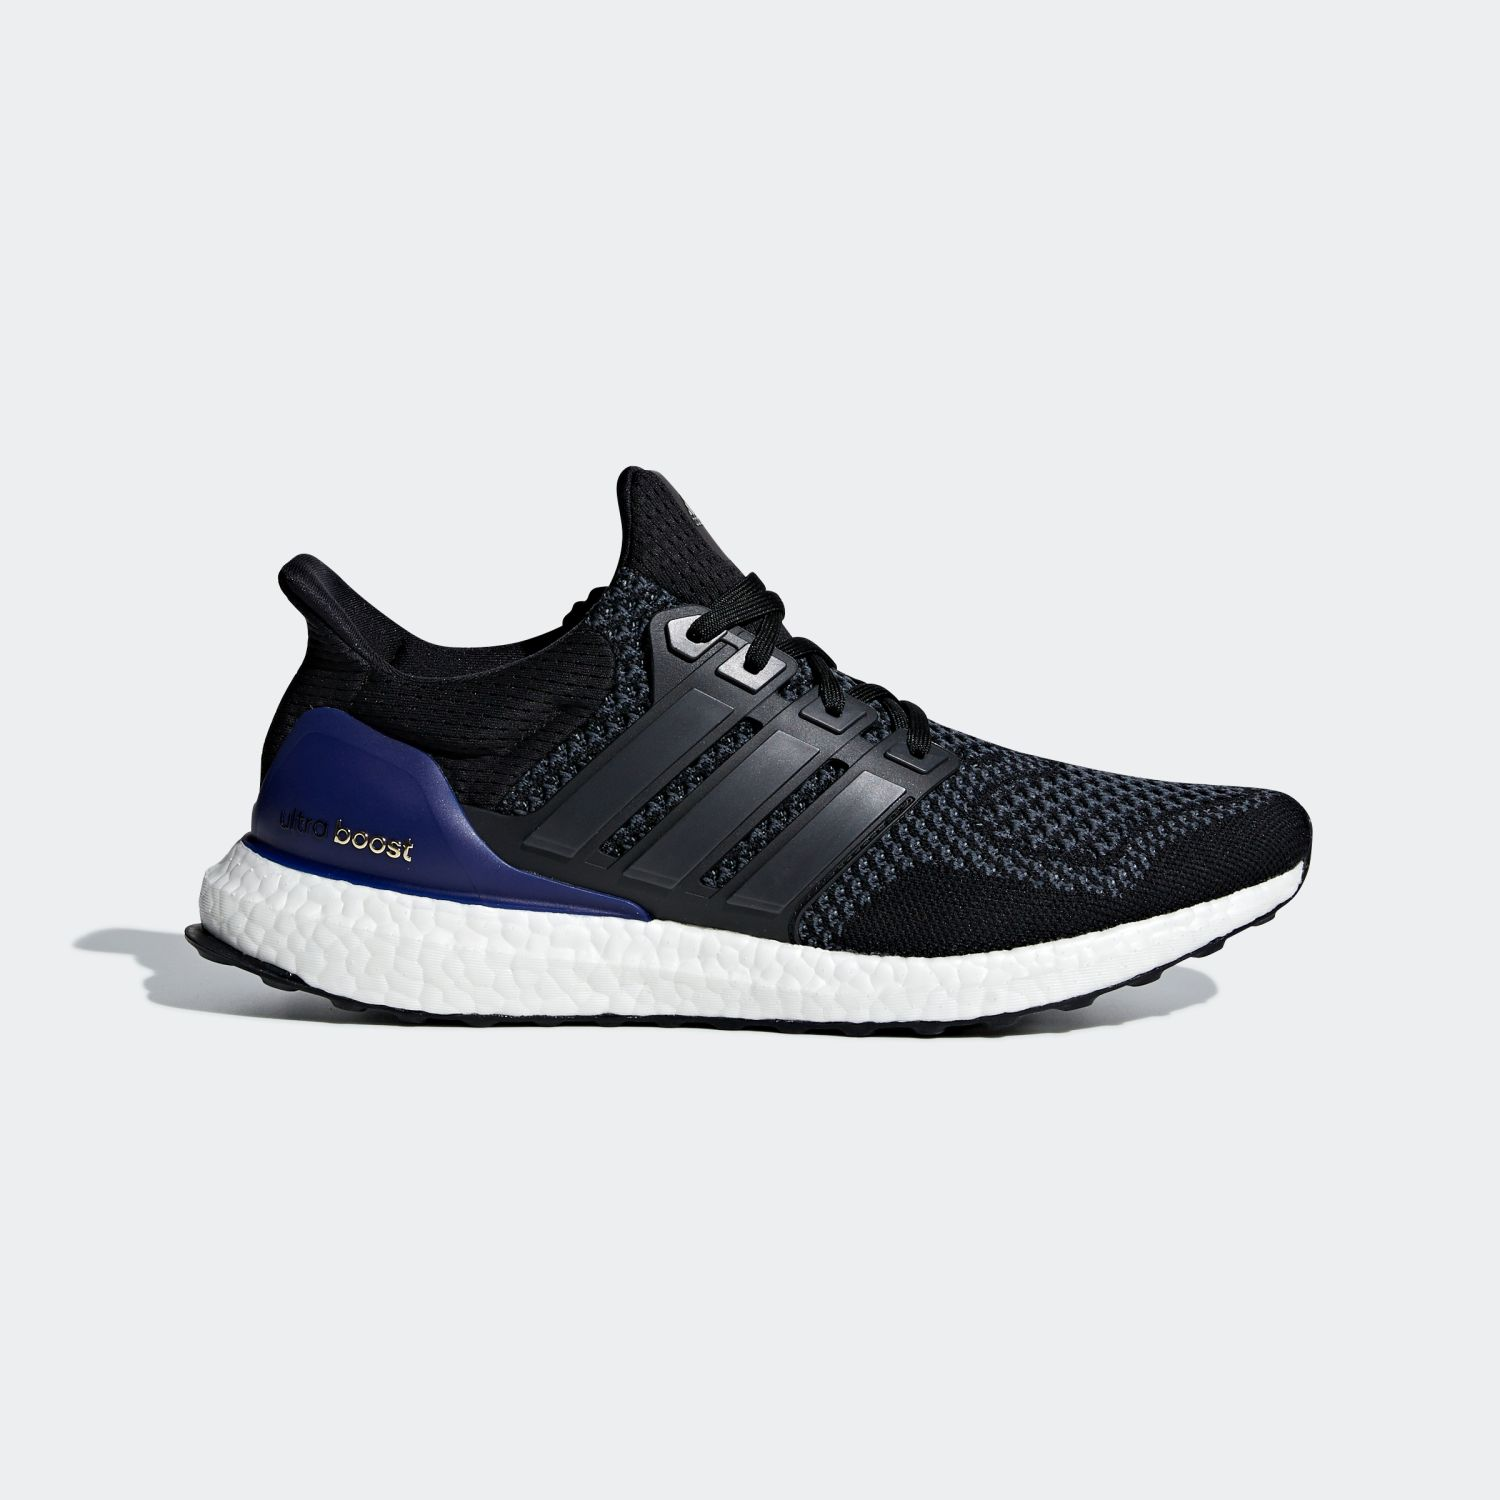 adidas-ultra-boost-g28319-release-20181201